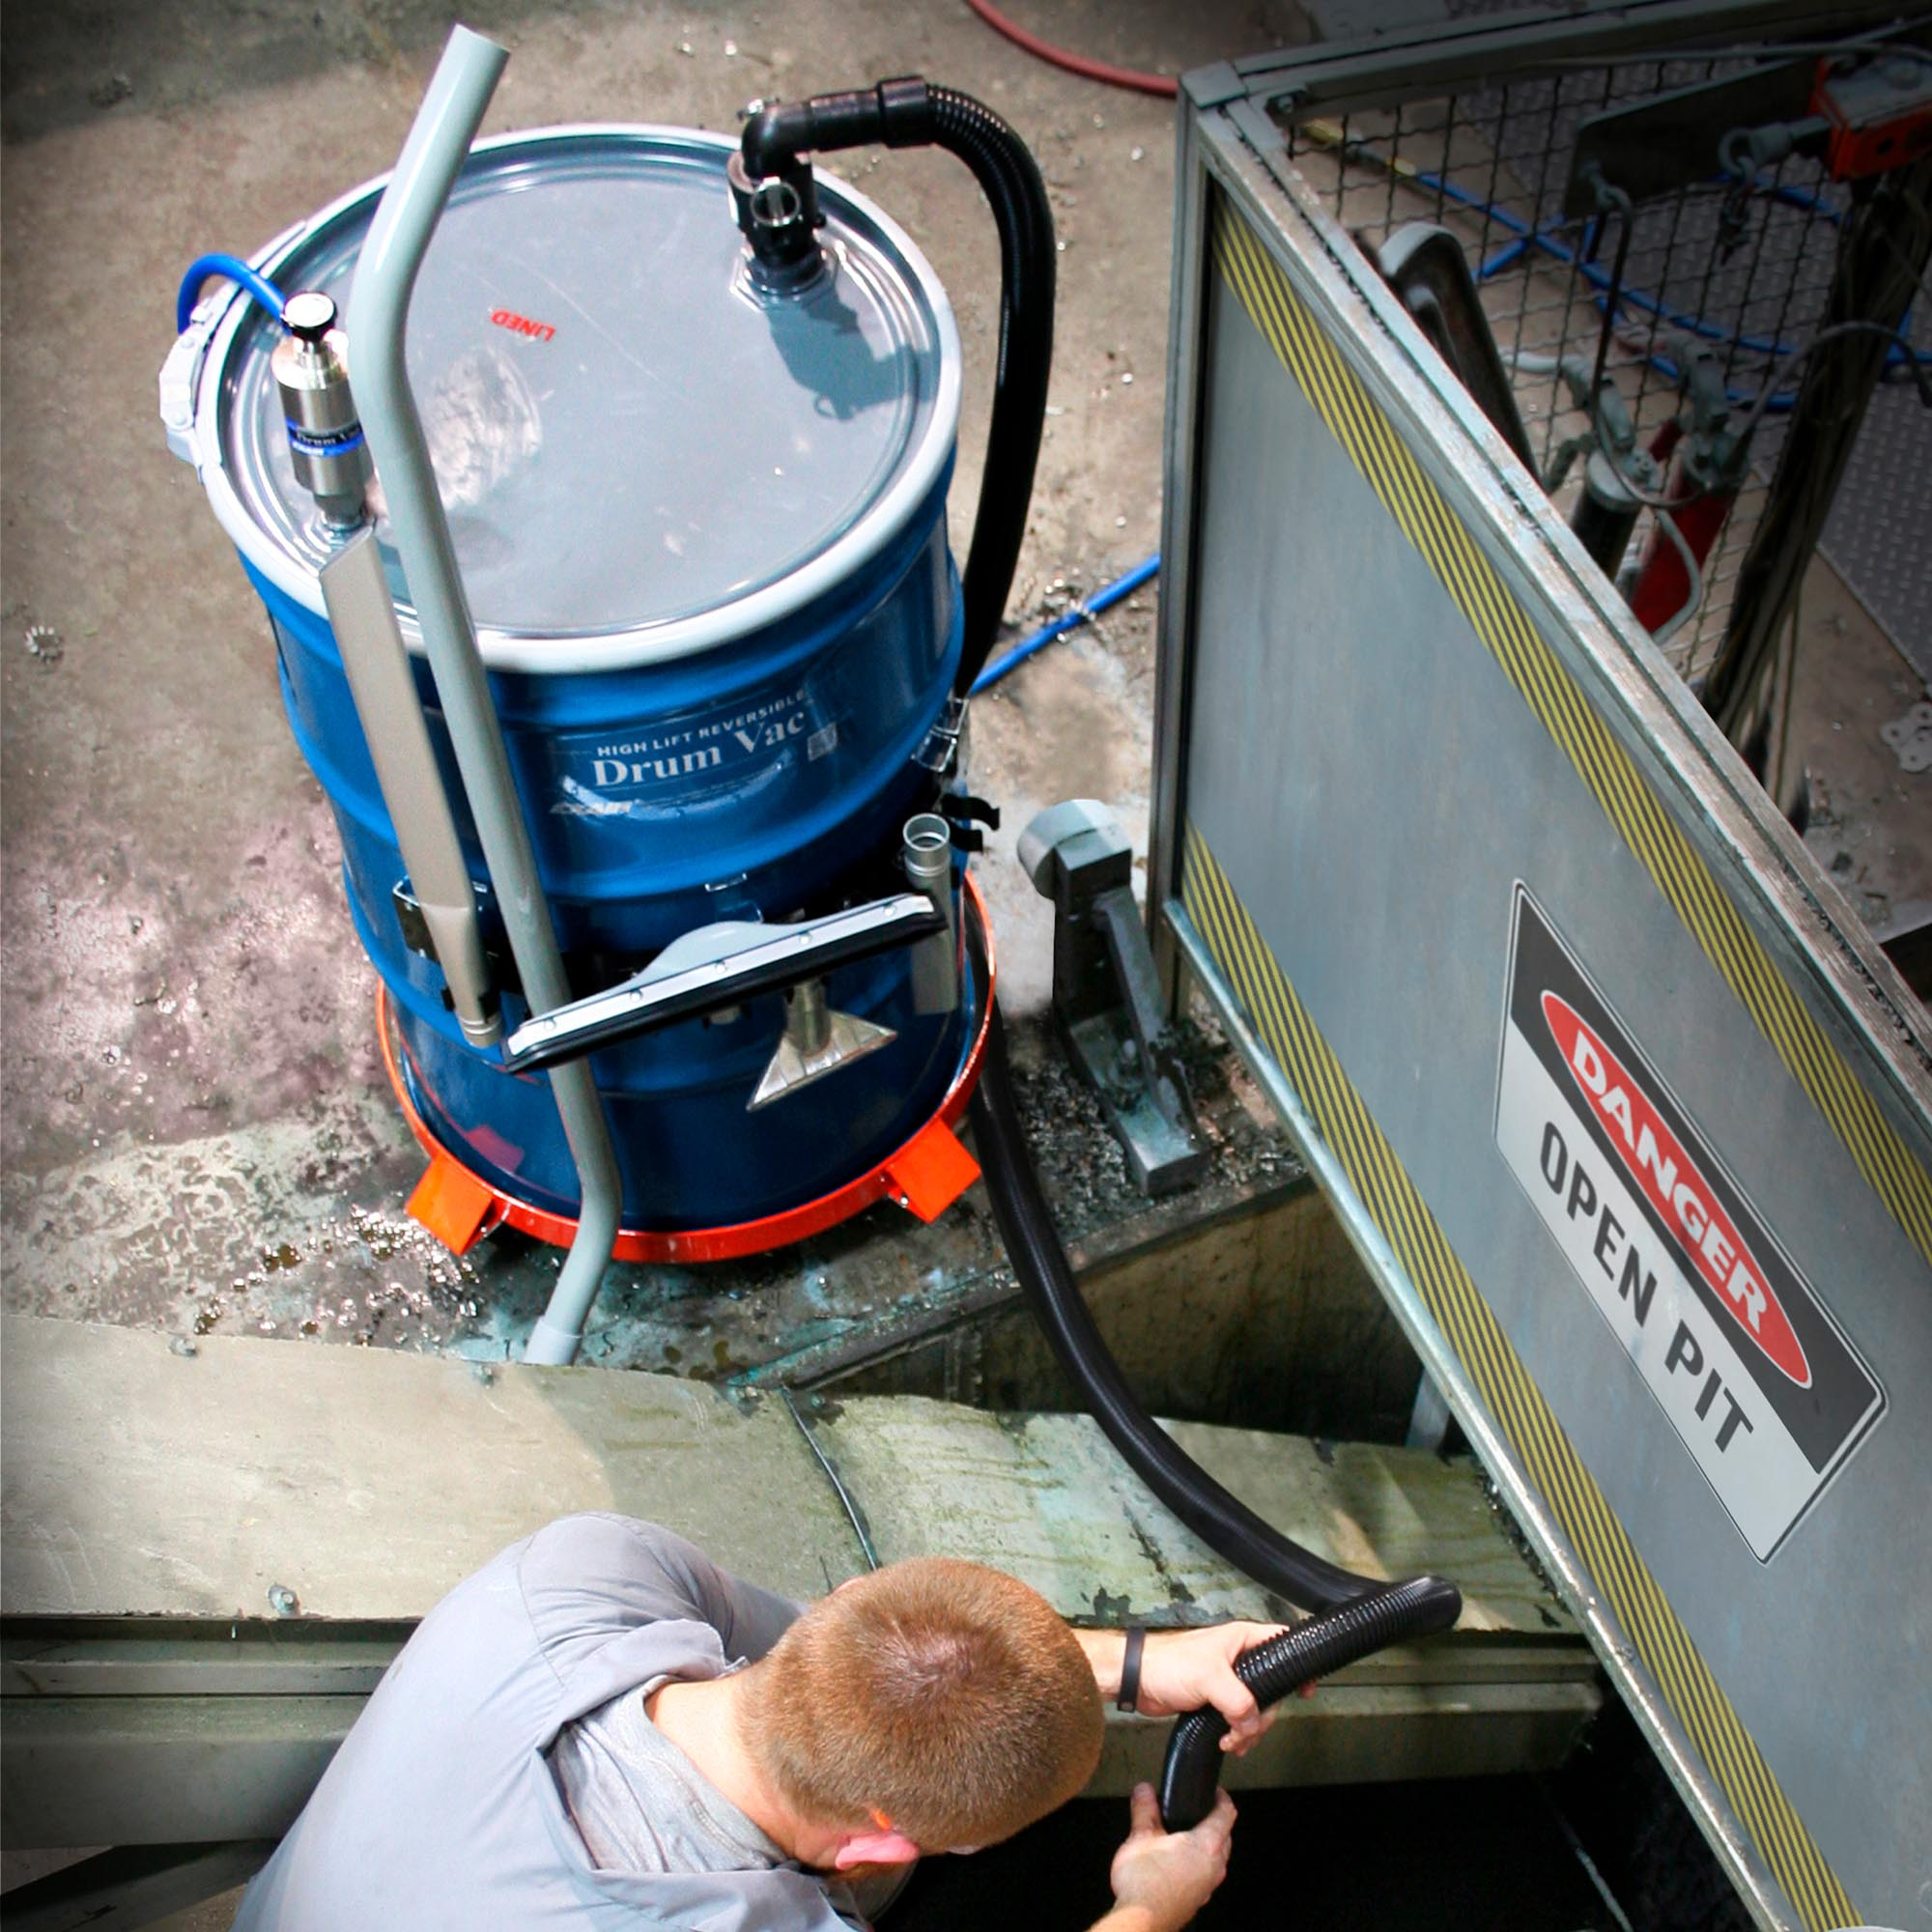 This High Lift Reversible Drum Vac is removing used coolant from a deep pit.